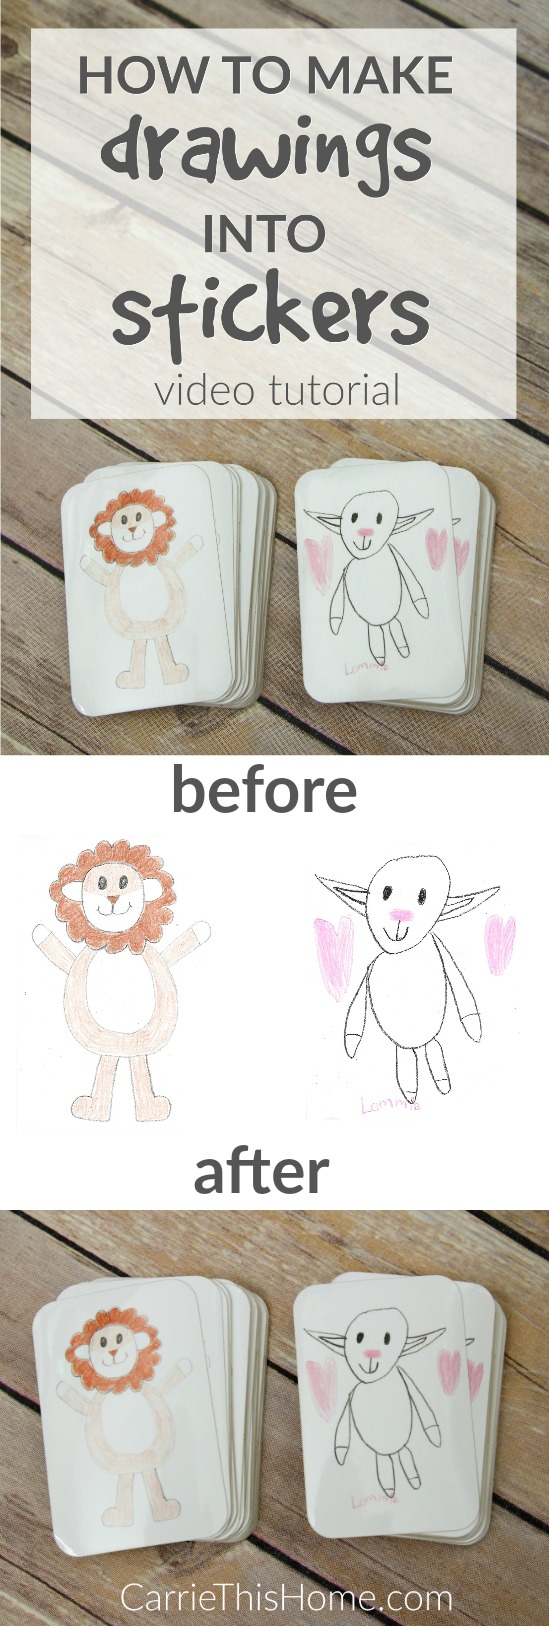 Turn your childs masterpieces into stickers the easy way! This quick video will show you how to make drawings into stickers in just minutes